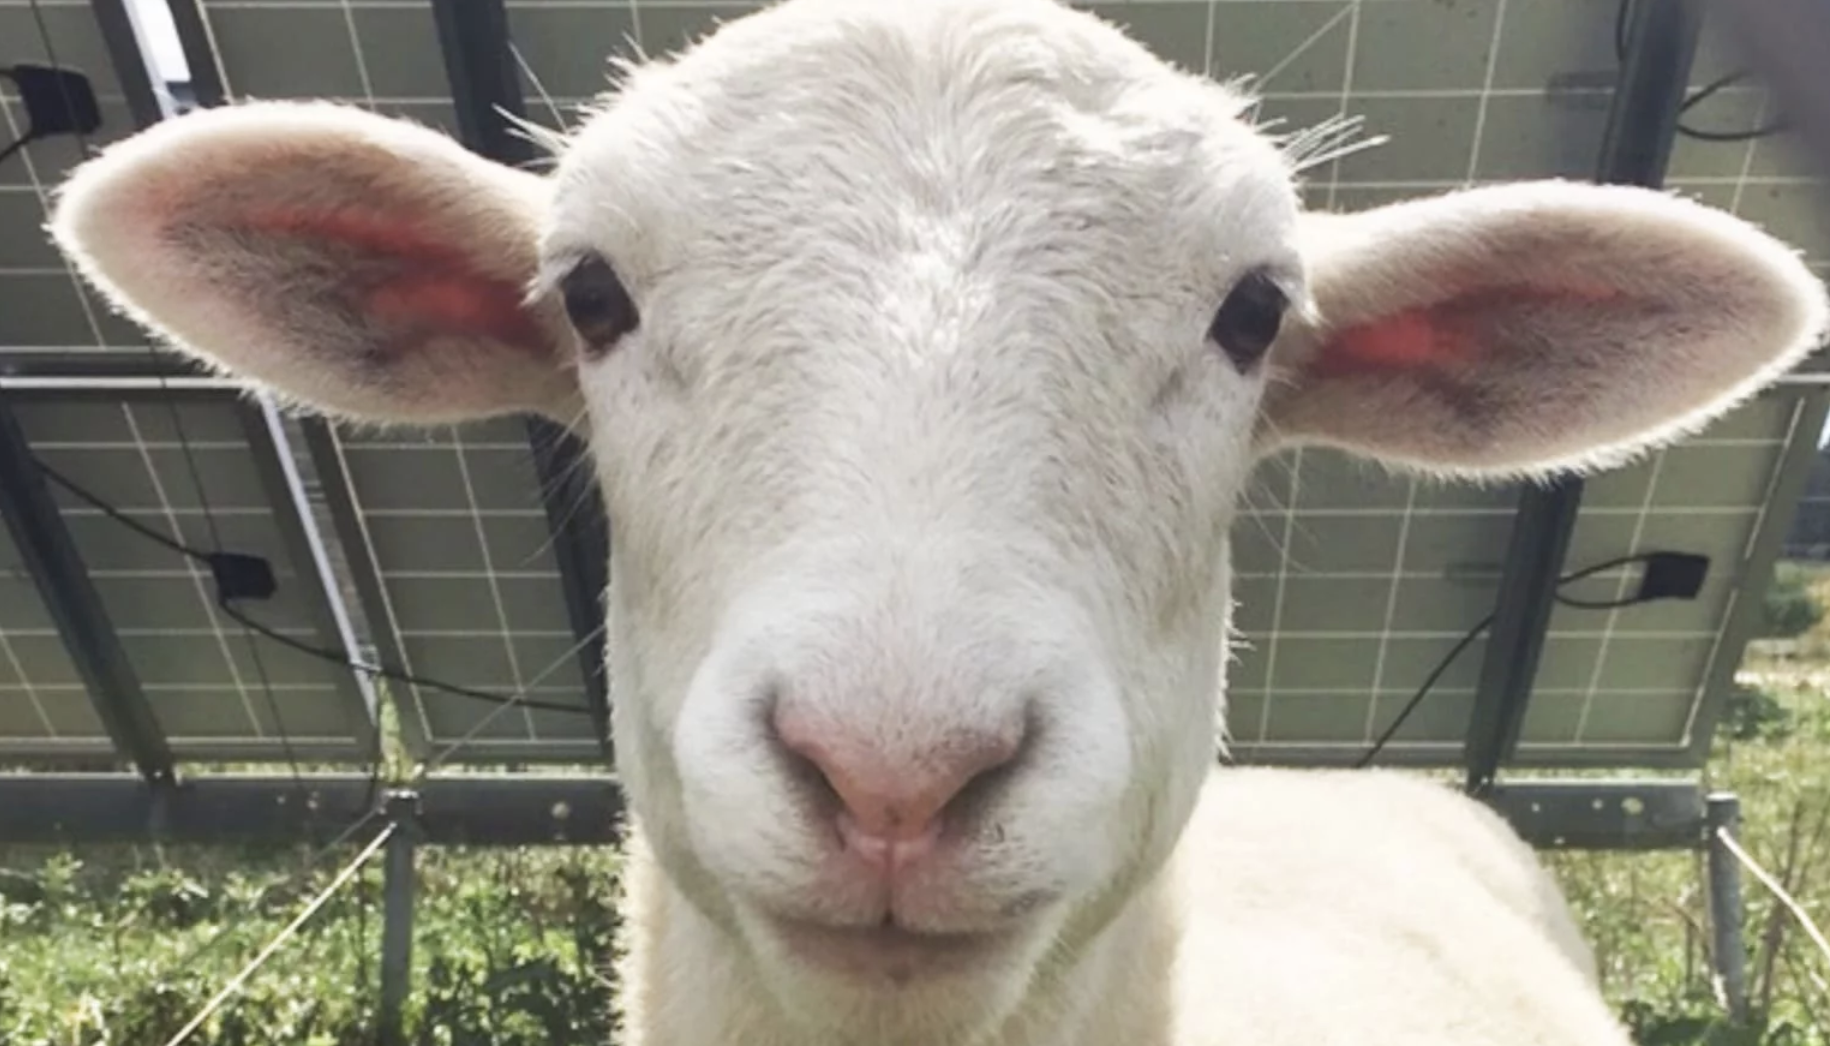 Nine Lambs At Center Of Antioch College Animal-Rights Fight Are Missing. No One Will Say Where They Are